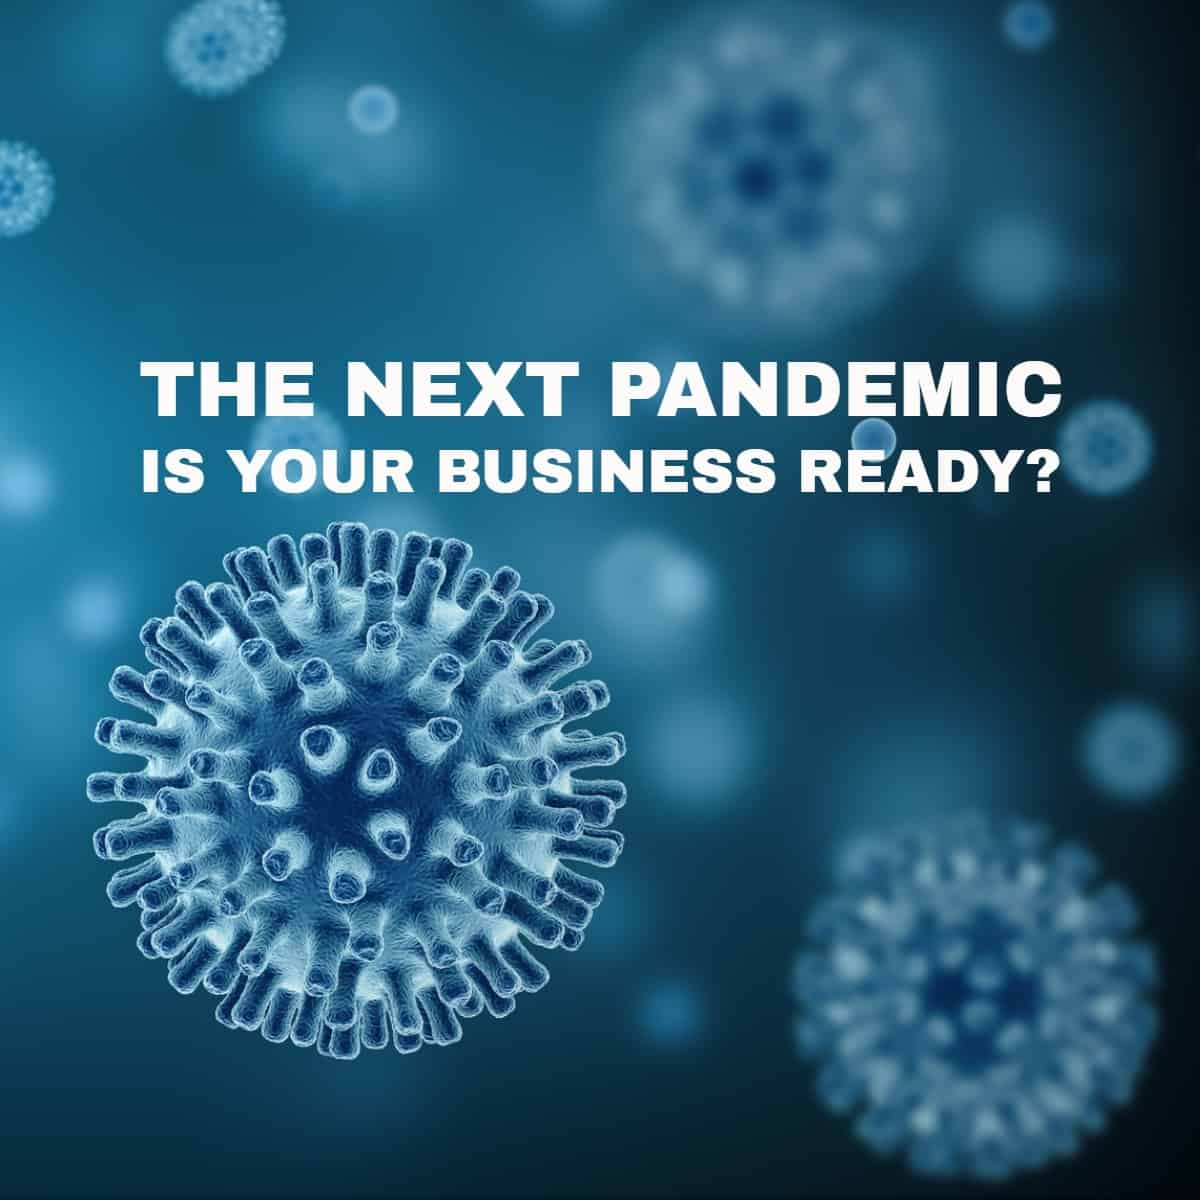 Business Ready for Pandemic social image